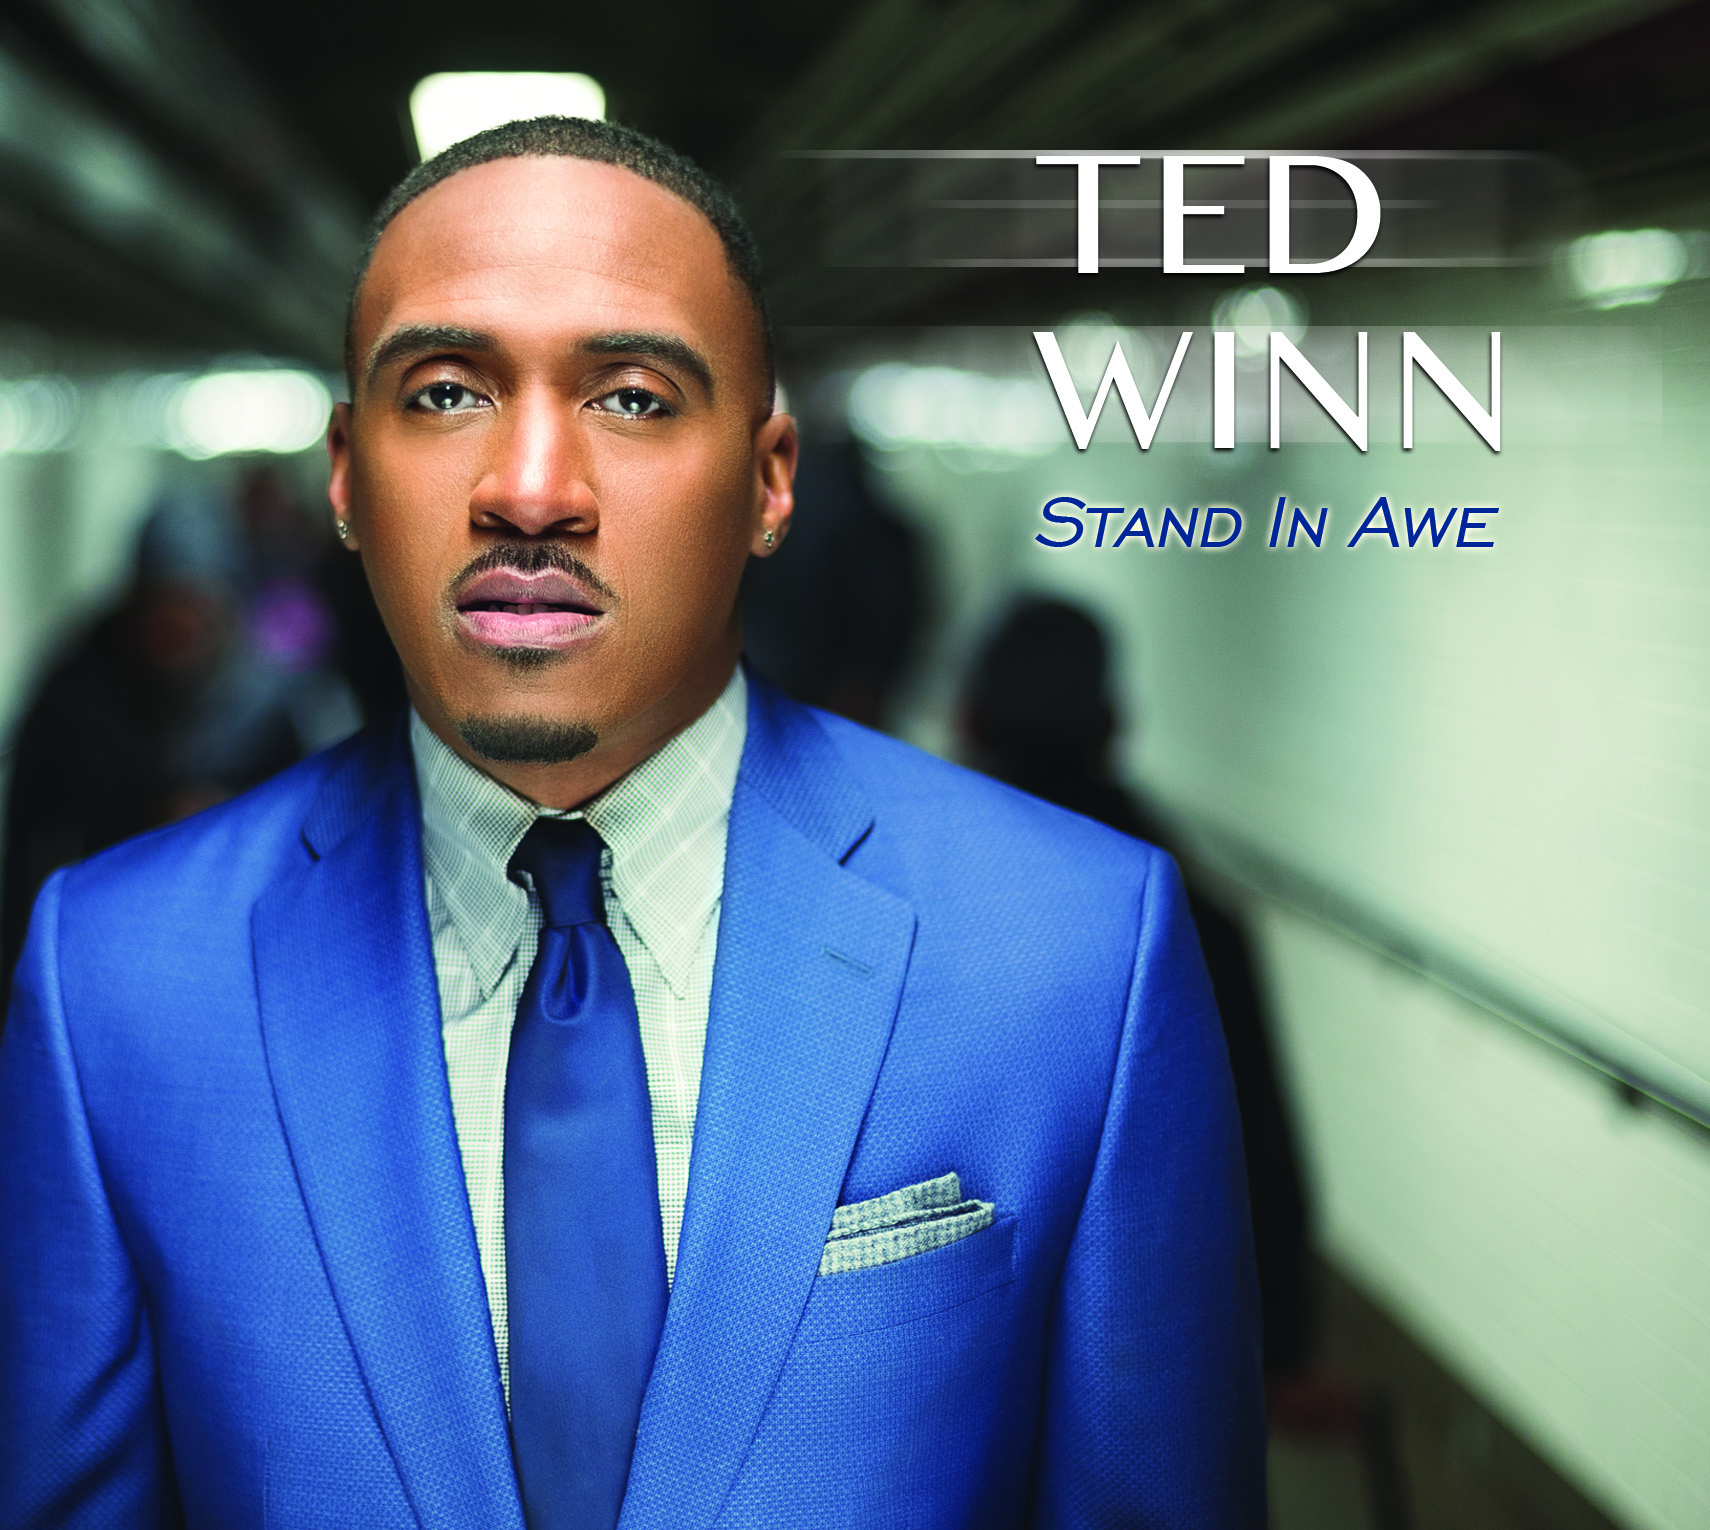 Ted Winn Stand In Awe Album Cover